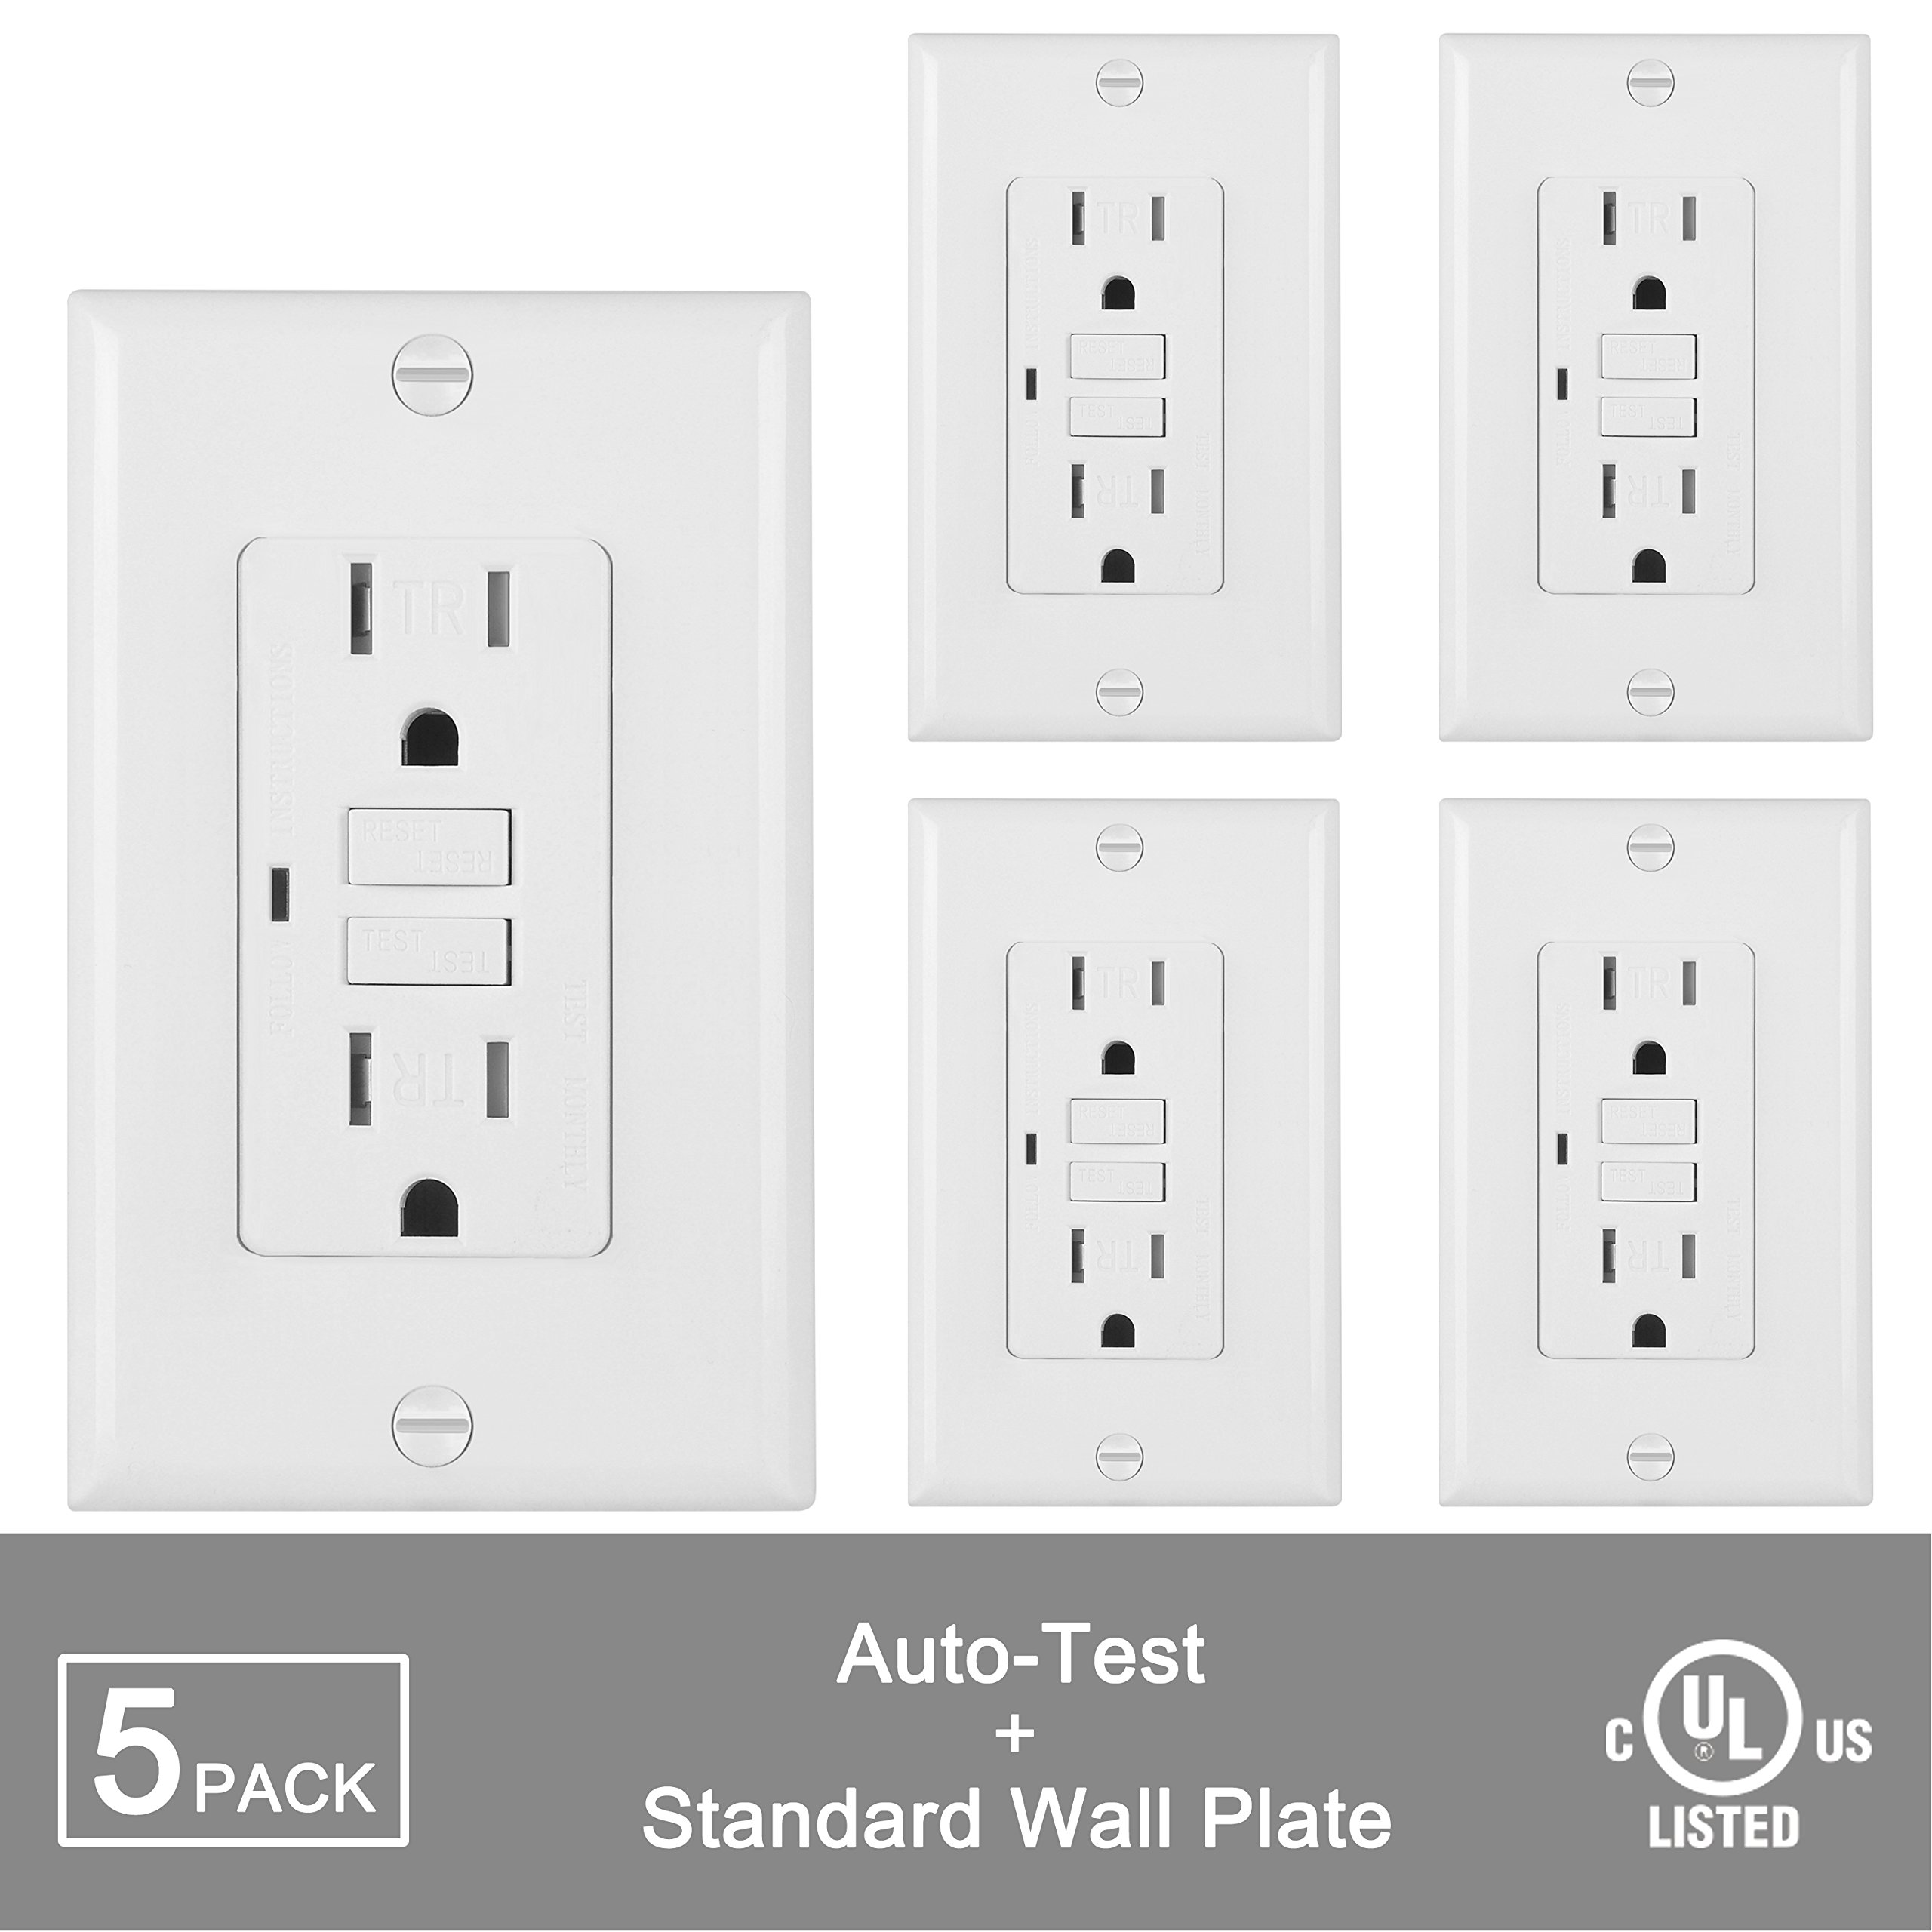 5 Pack Bestten Self Test Tamper Resistant Gfci Receptacle Outlet Groundfault Circuit Interrupter With Led Power